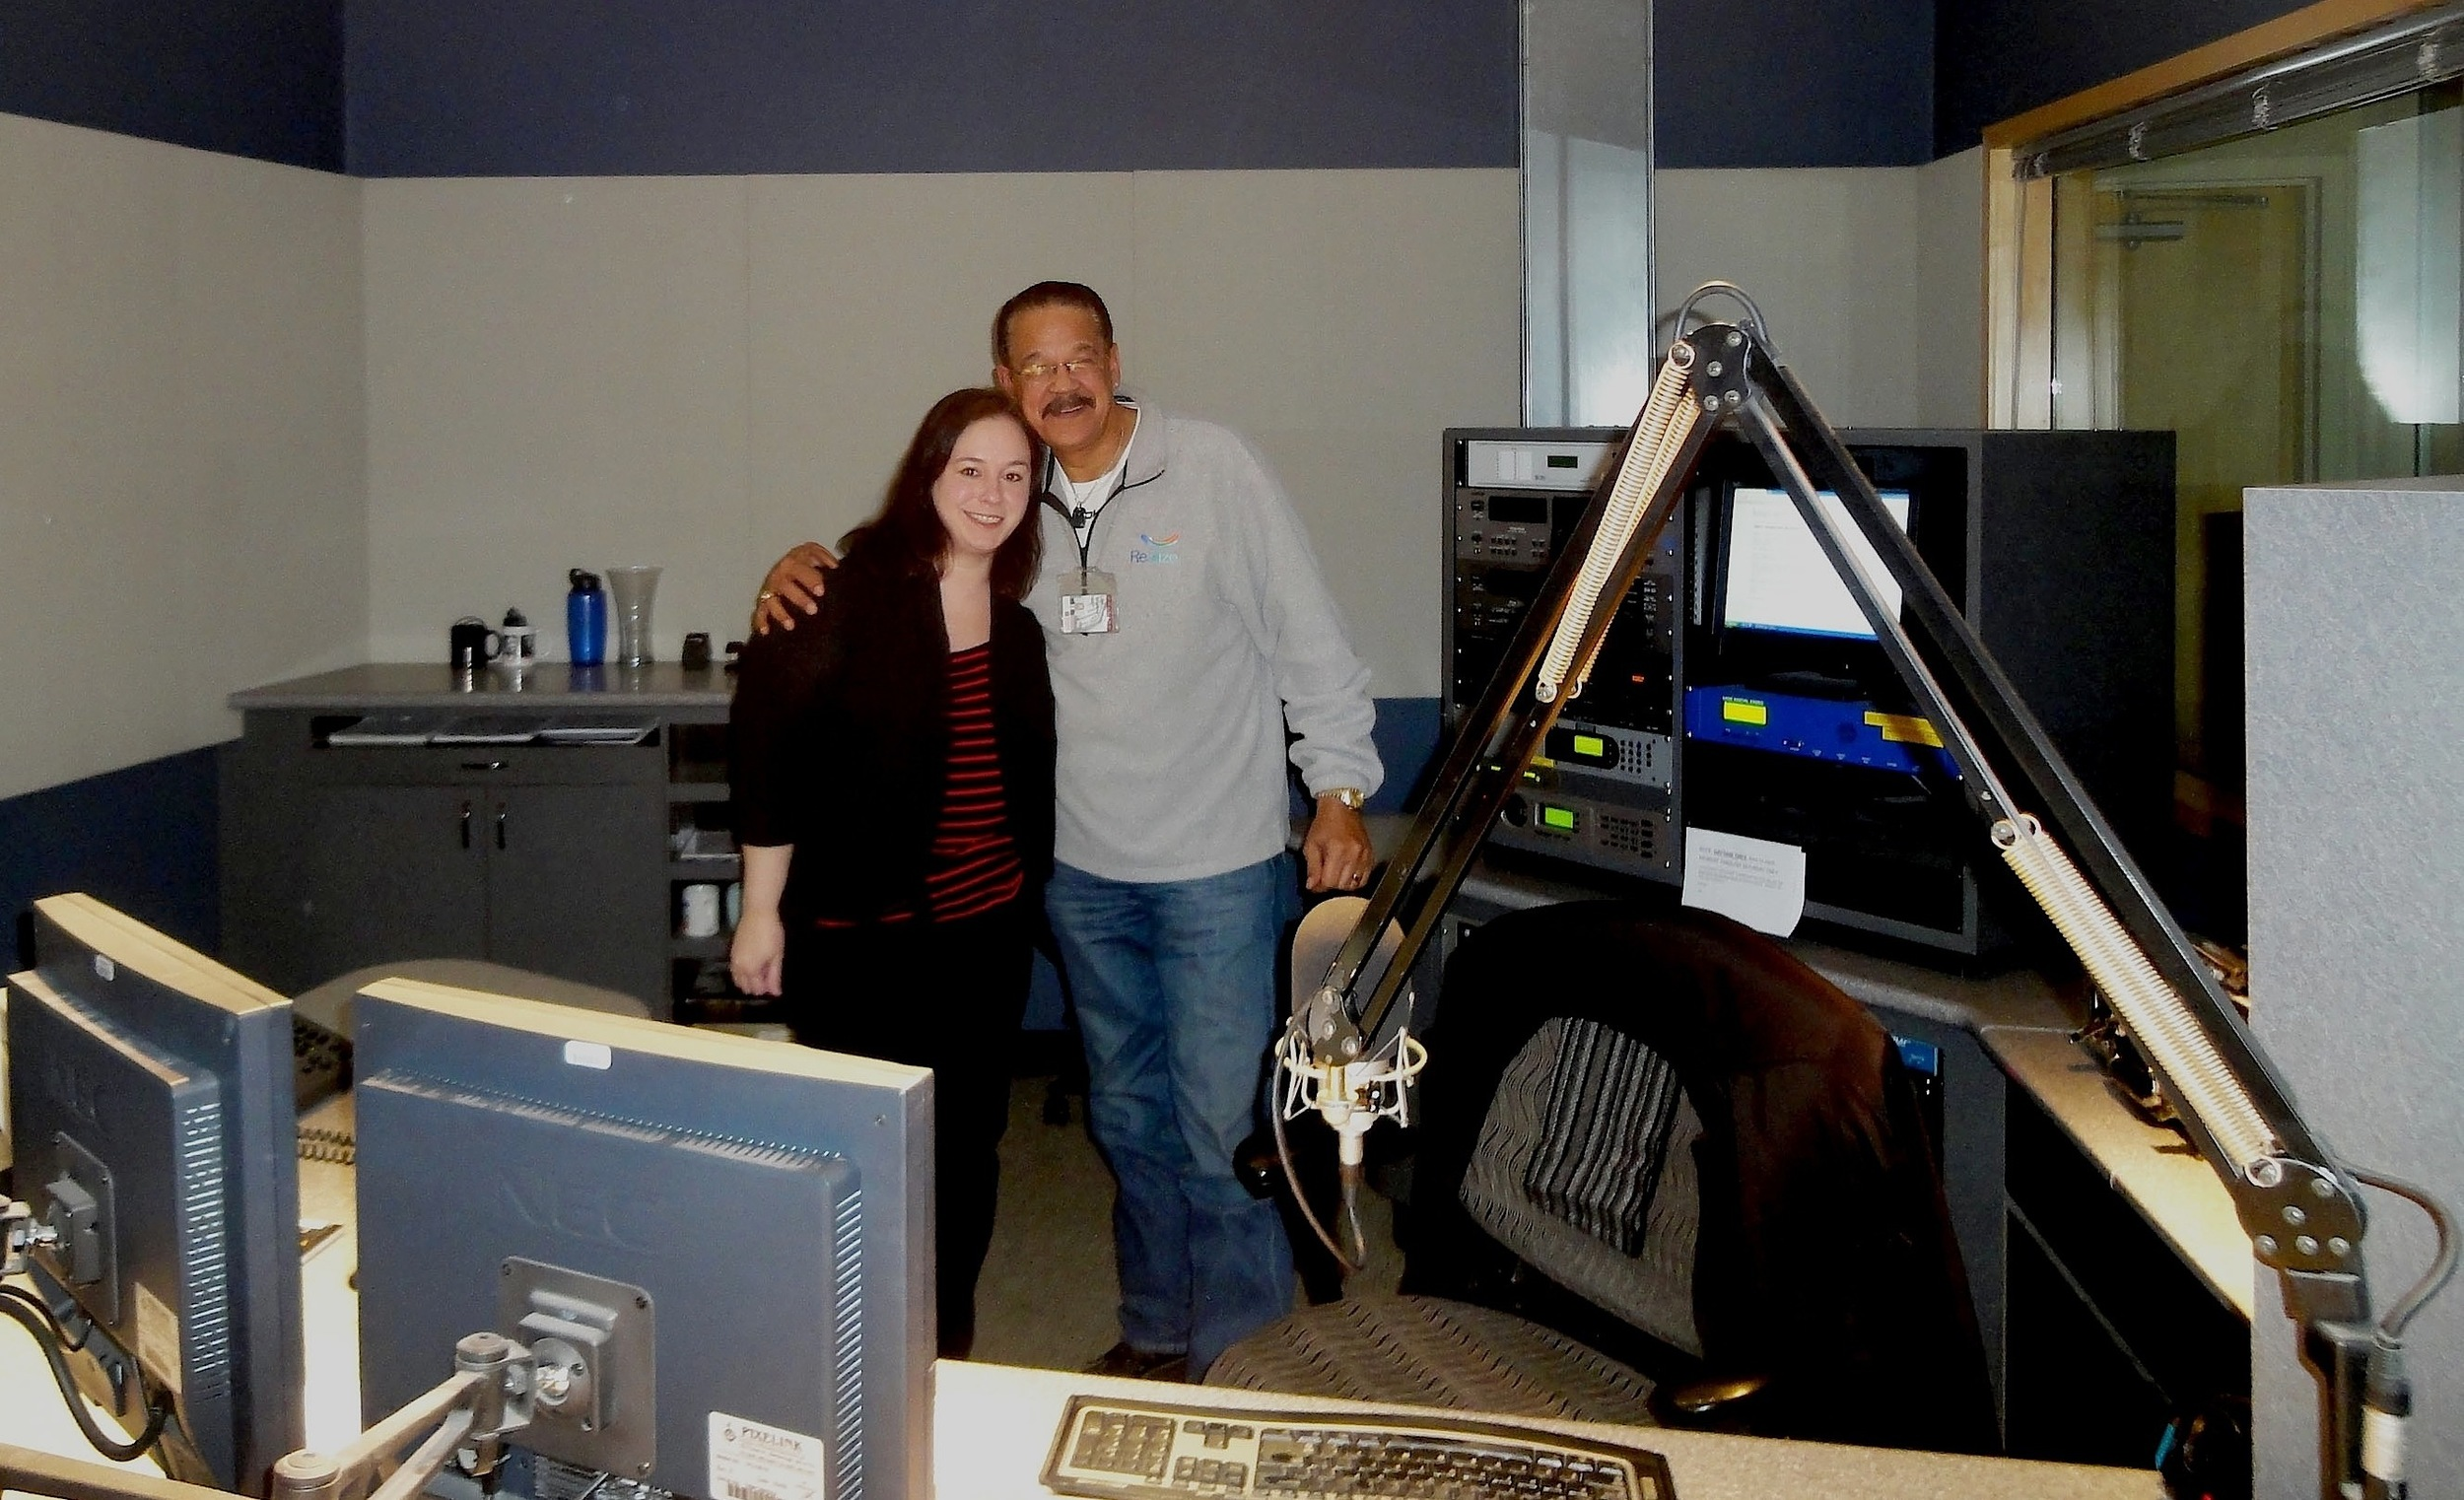 Julie in studio with host Jeff Duperon of WRTI 90.1